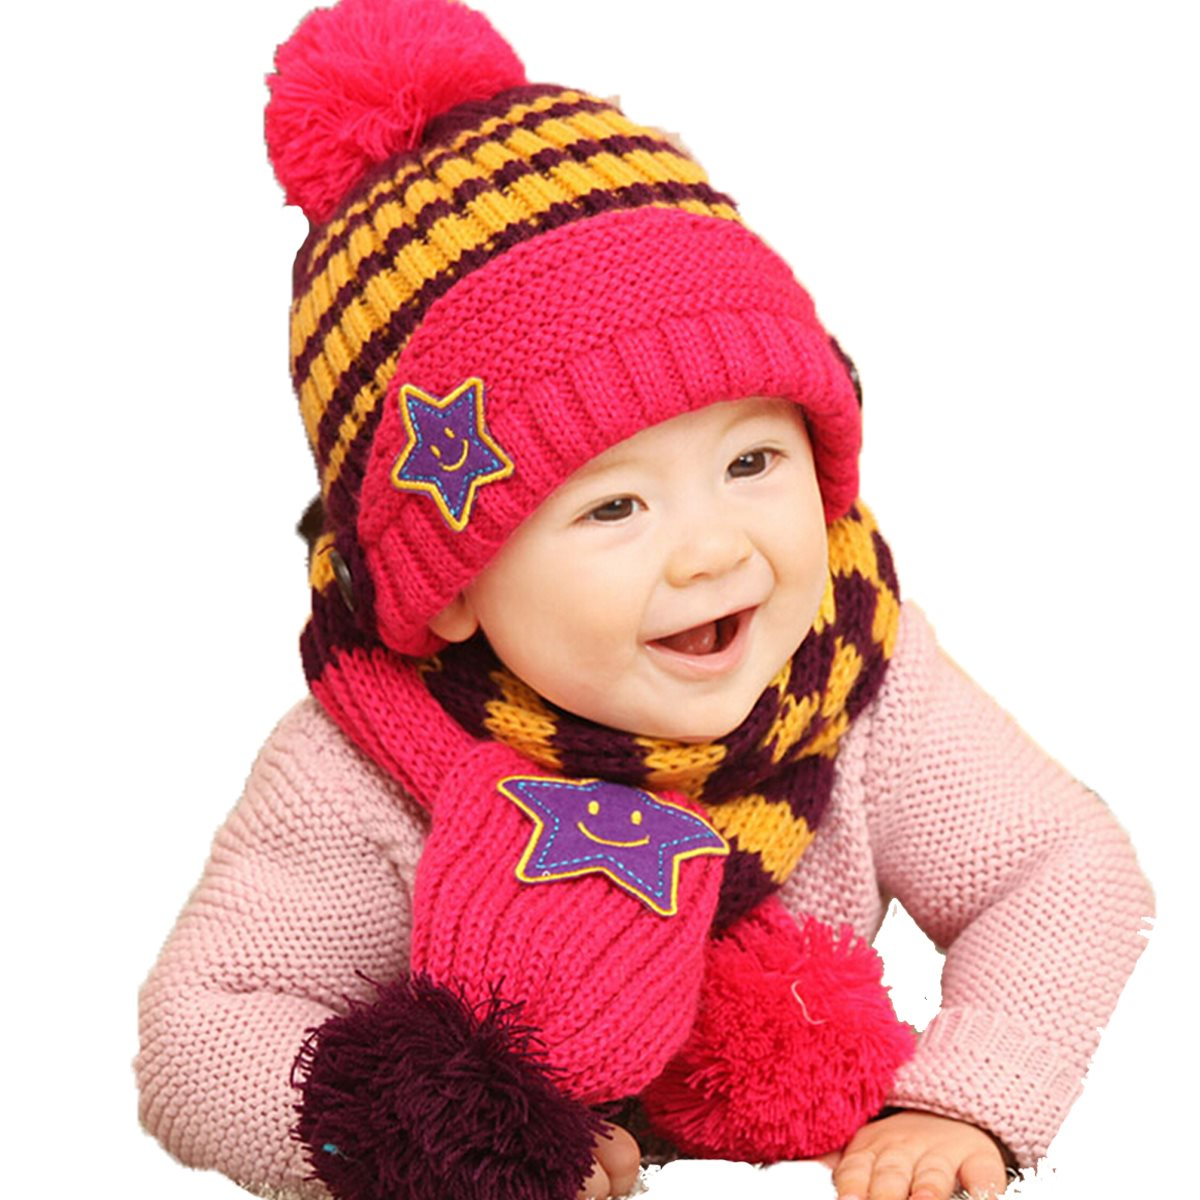 Promotion 7 Colors Winter Beanie Hats 5-Star Children Scarf & Beanies Caps Set Baby Boys Girls Knitted Wool Blending Earflap(China (Mainland))